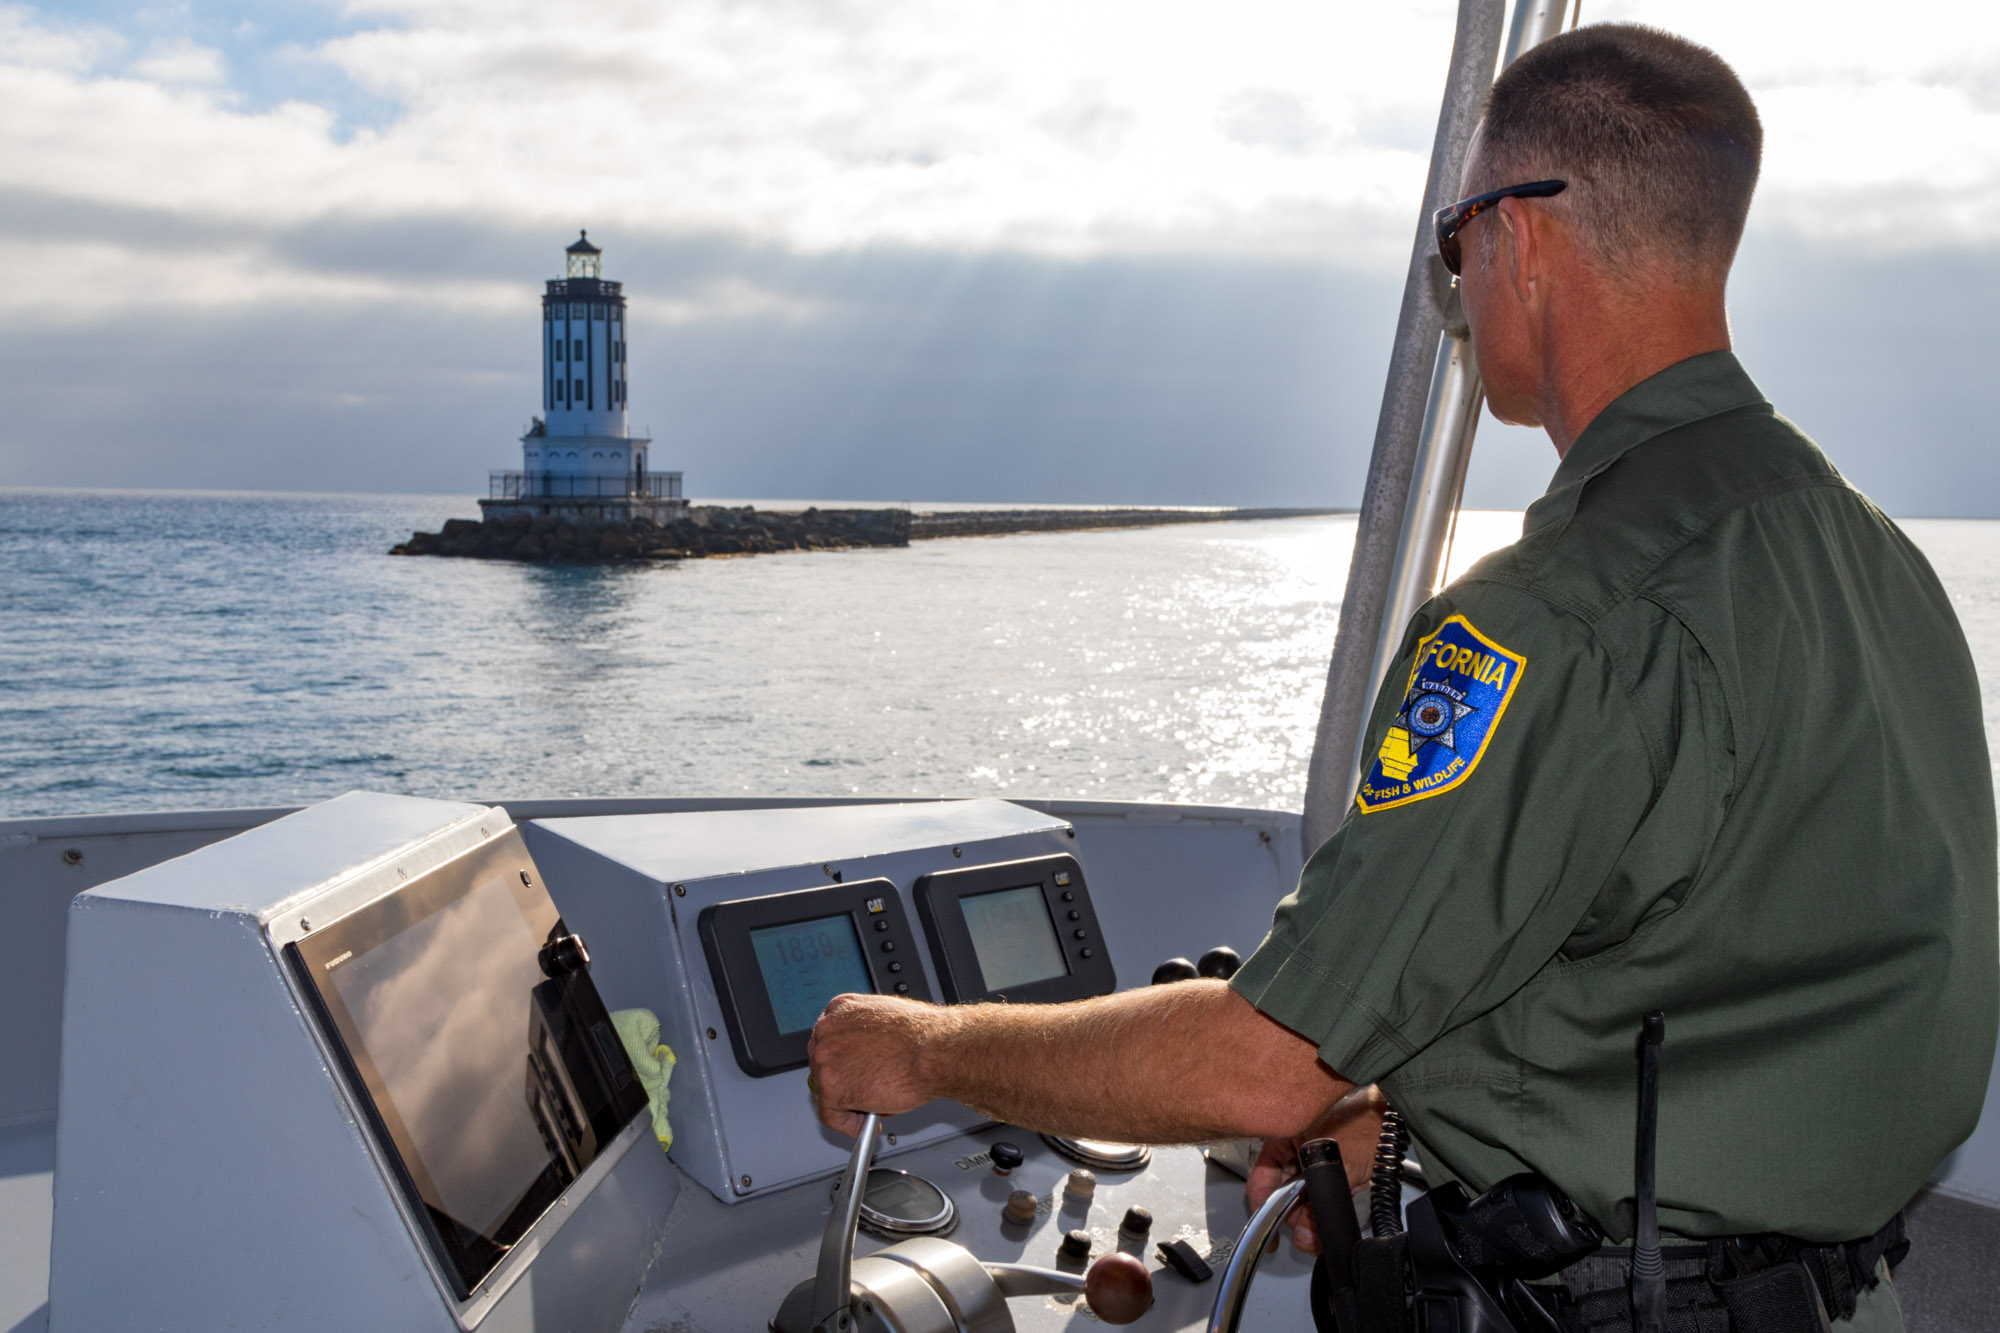 image of Wildlife Officer piloting a boat with lighthouse in background